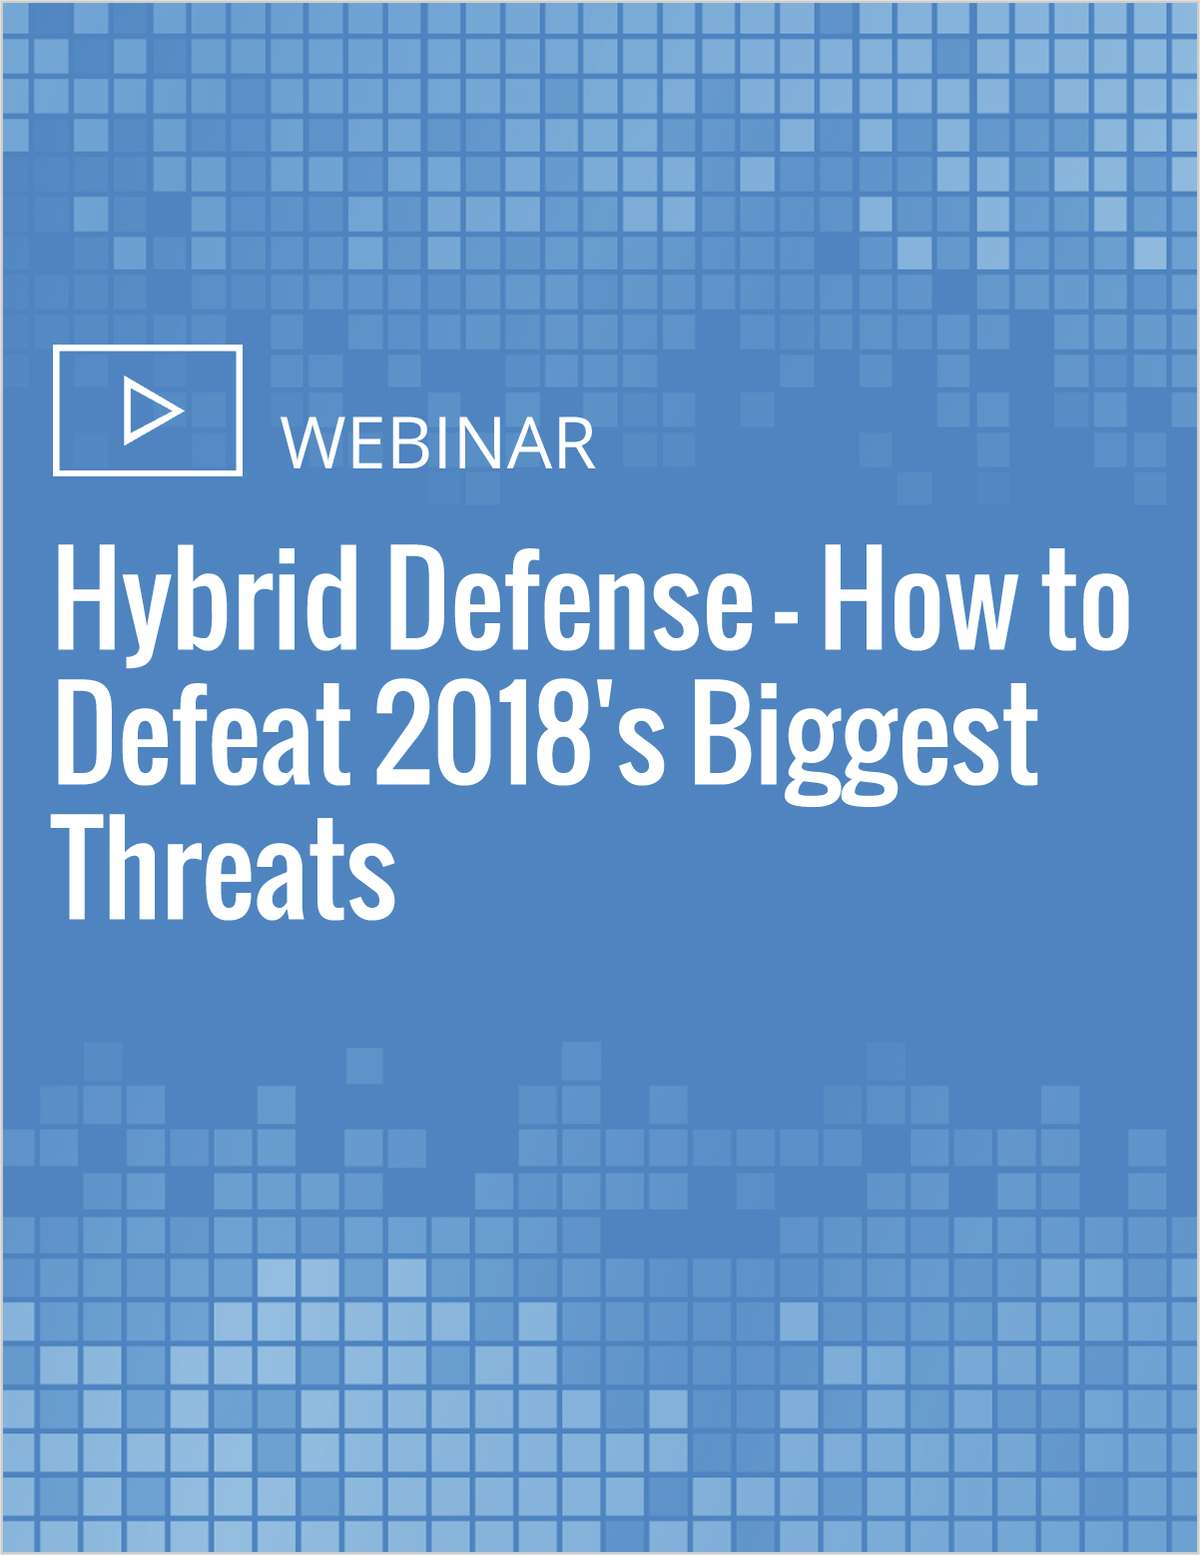 Hybrid Defense - How to Defeat 2018's Biggest Threats